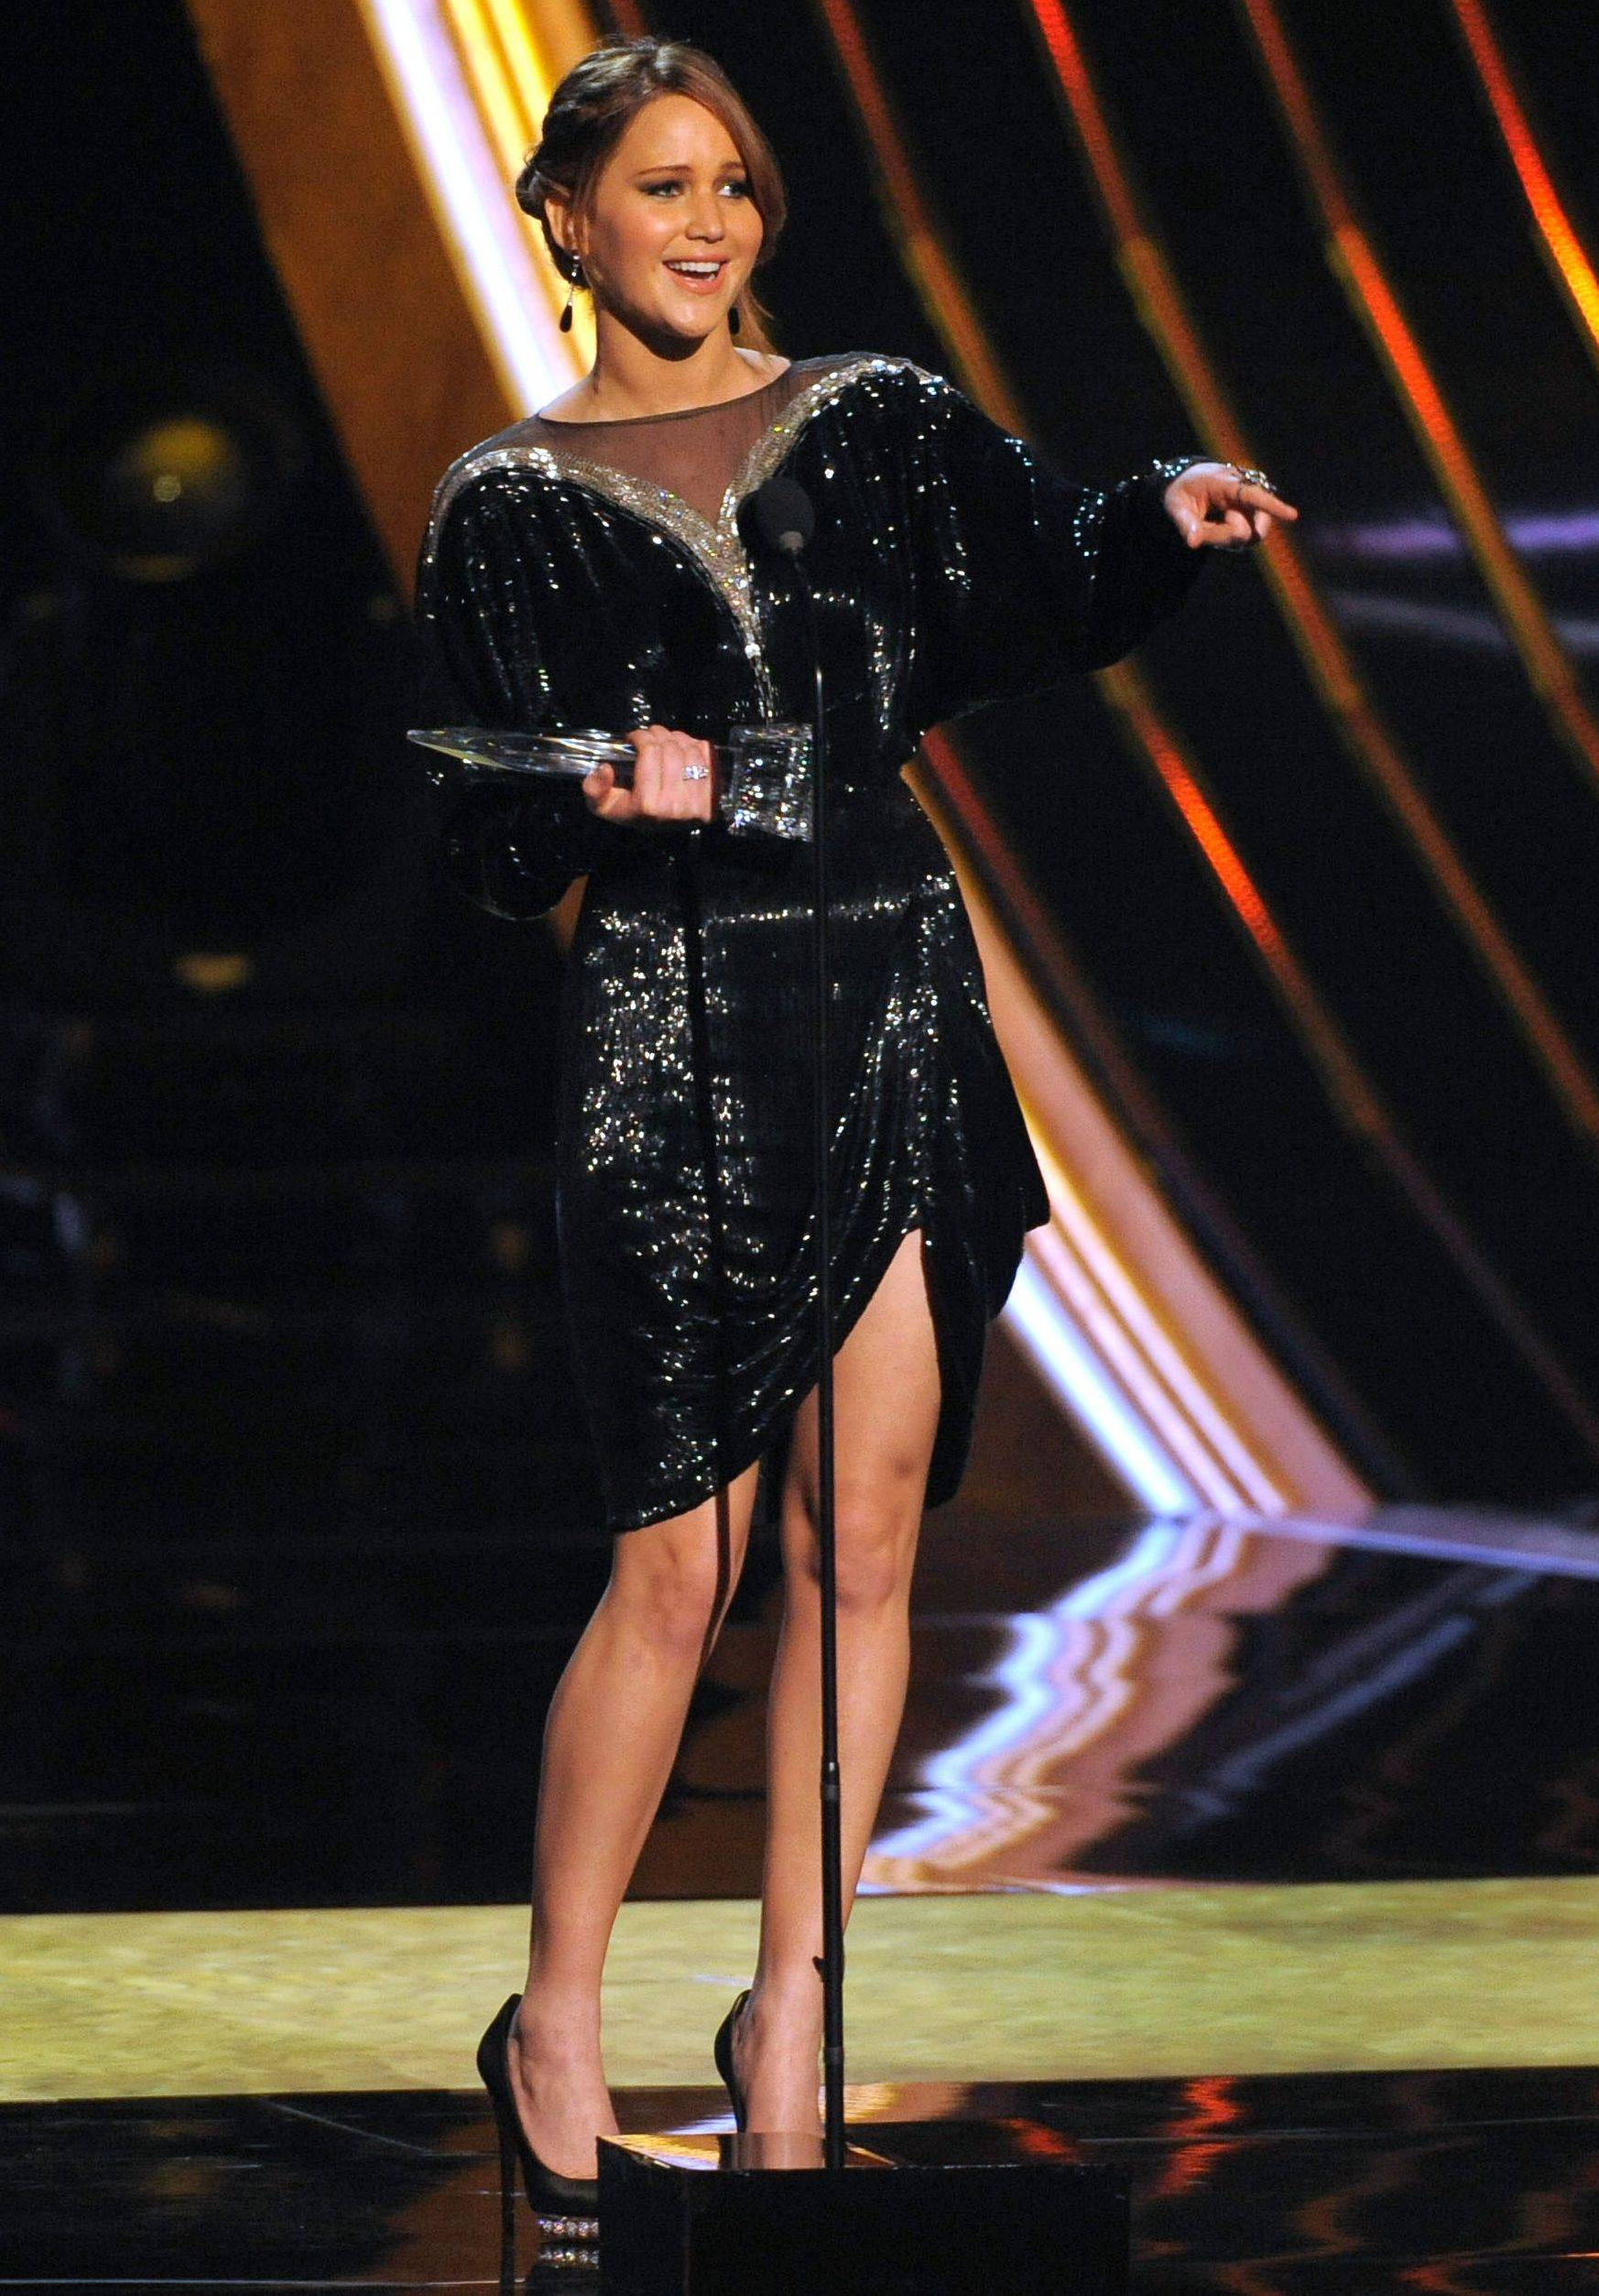 'Hunger Games' big winner at People's Choice Awards